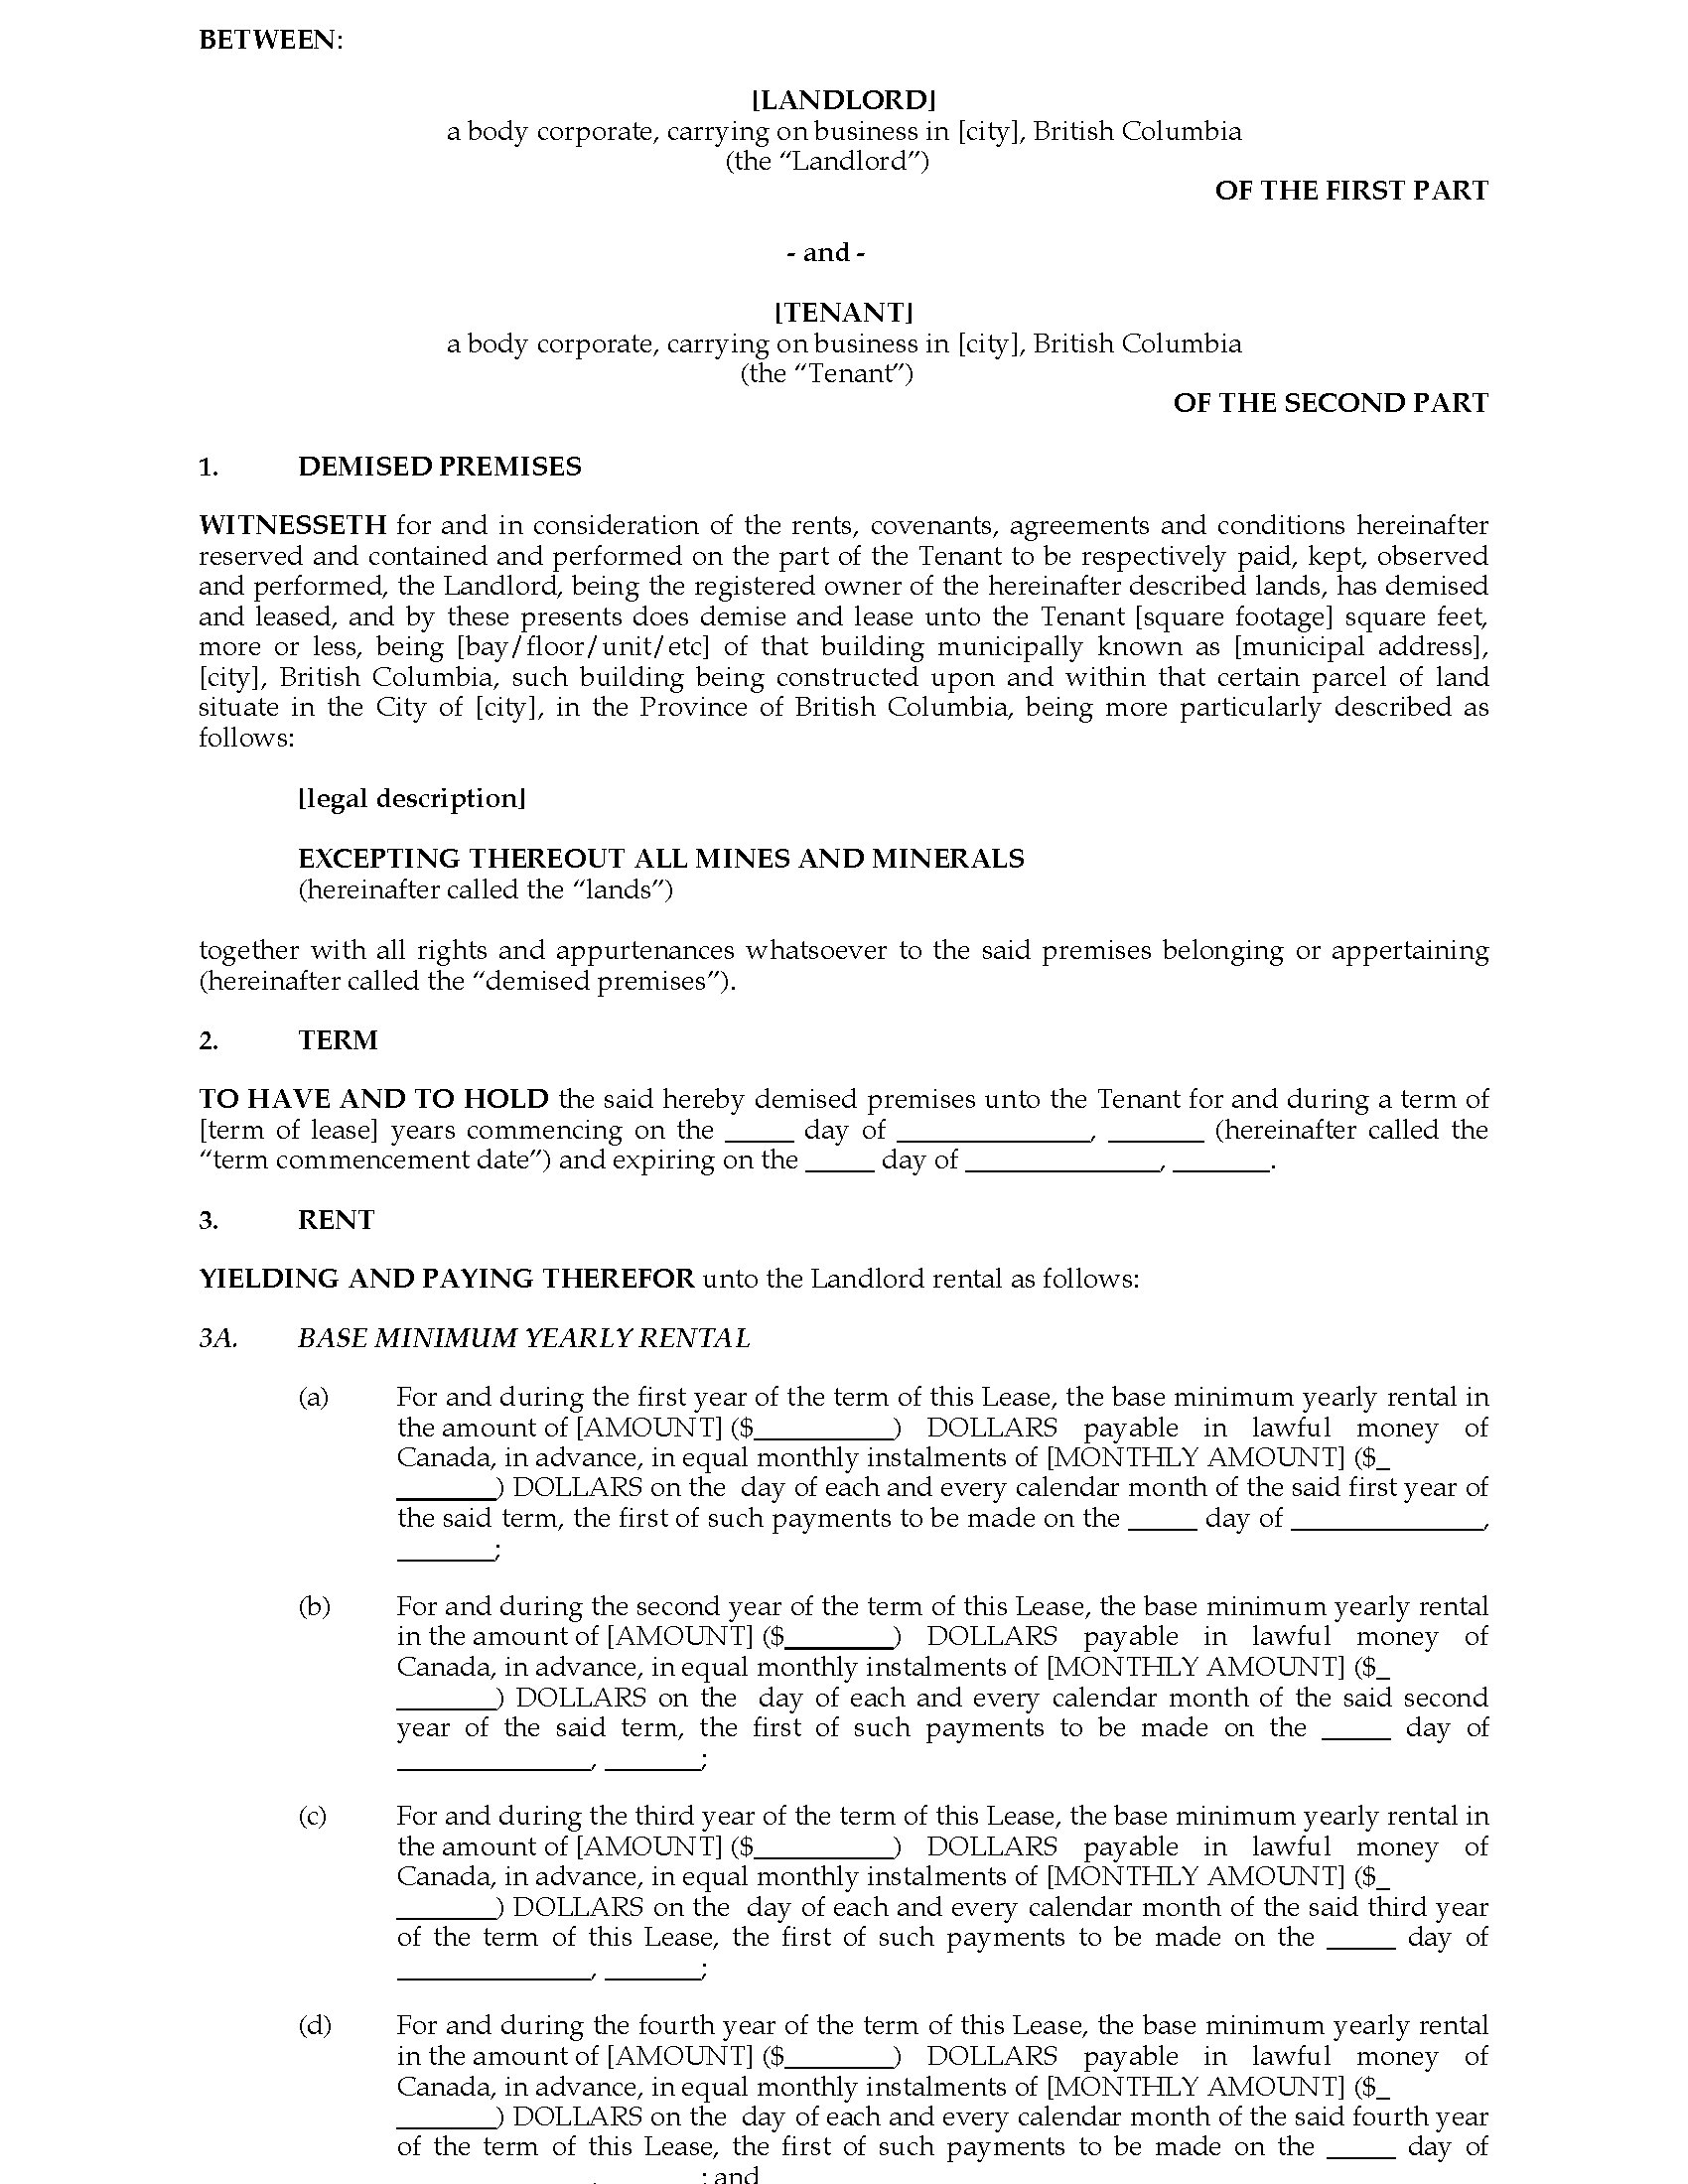 British Columbia Commercial Triple Net Lease Agreement